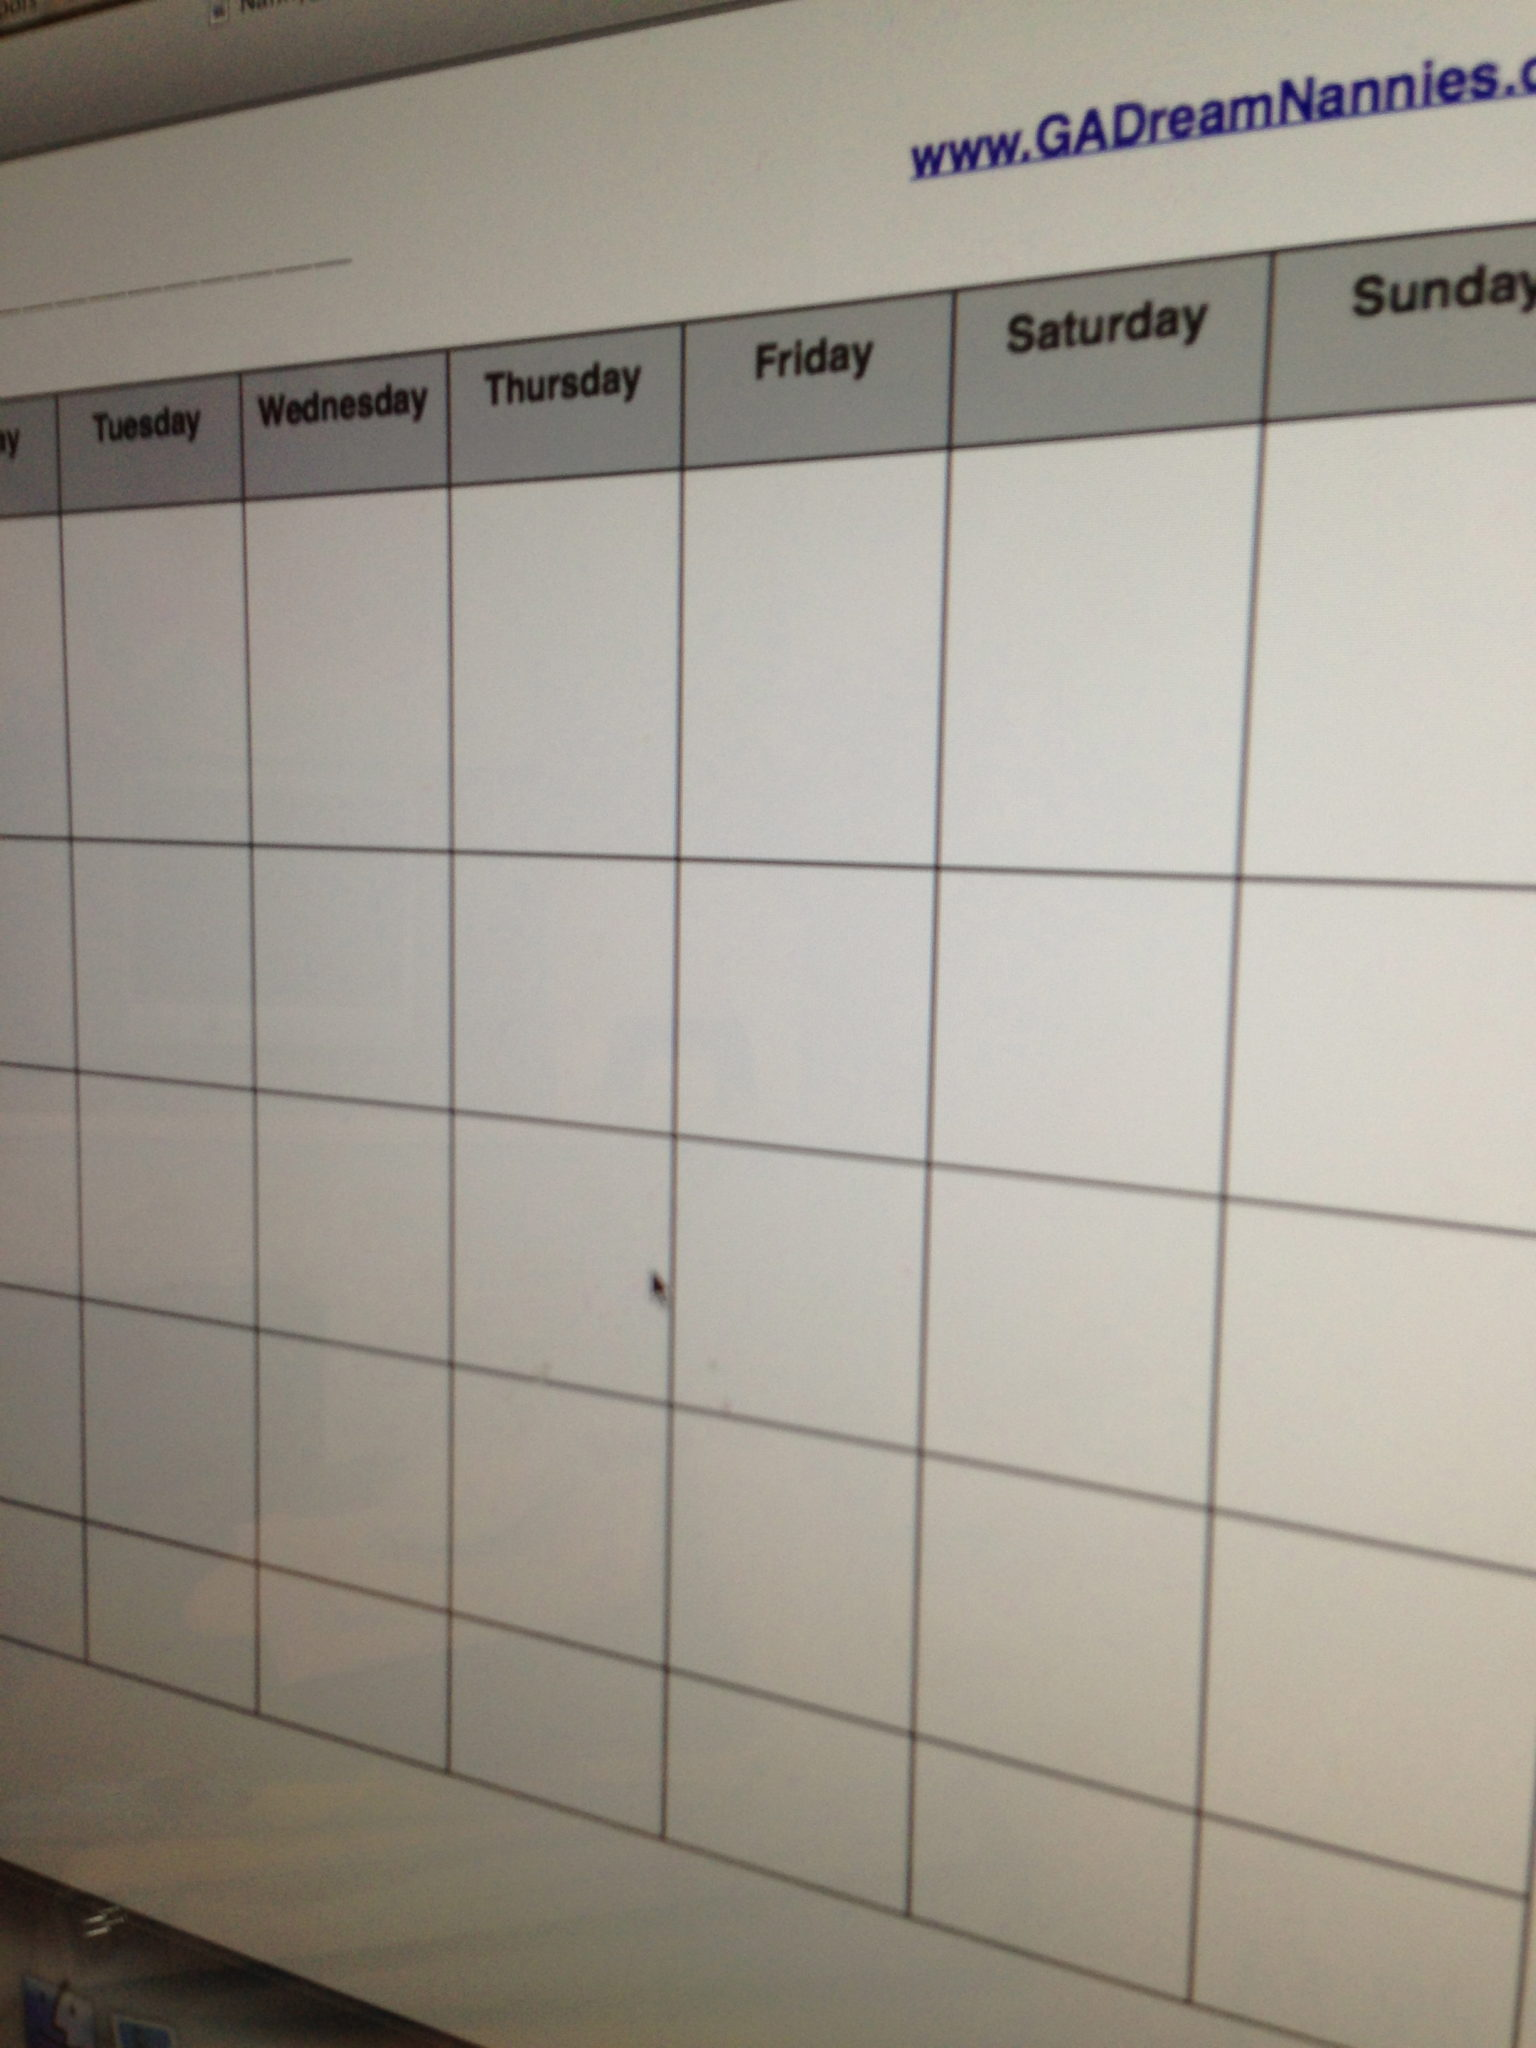 Free nanny weekly meal plan template for The nanny house layout